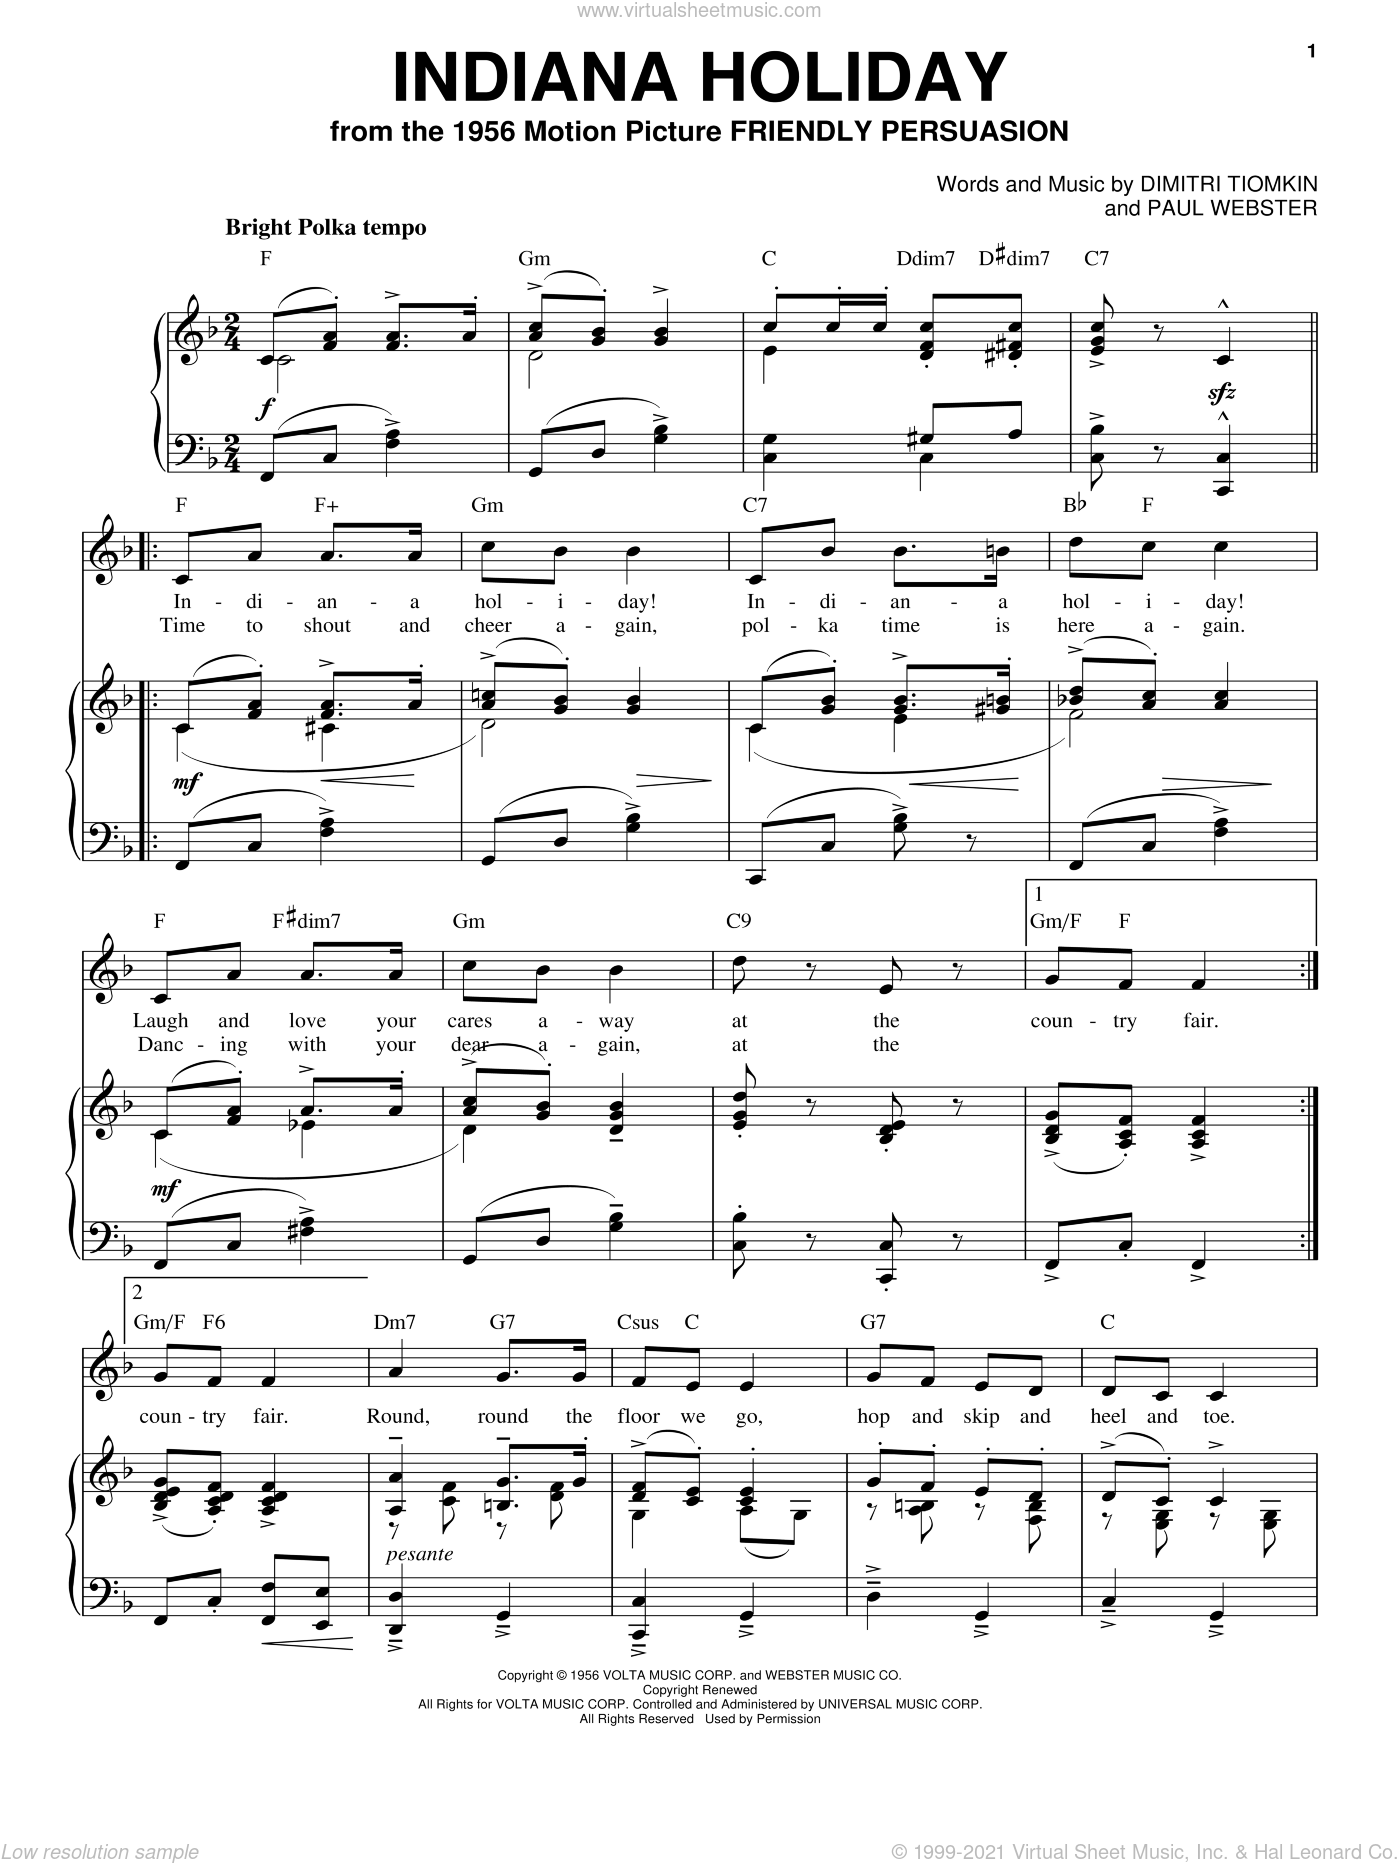 Indiana Holiday sheet music for voice, piano or guitar by Dimitri Tiomkin and Paul Francis Webster, intermediate skill level